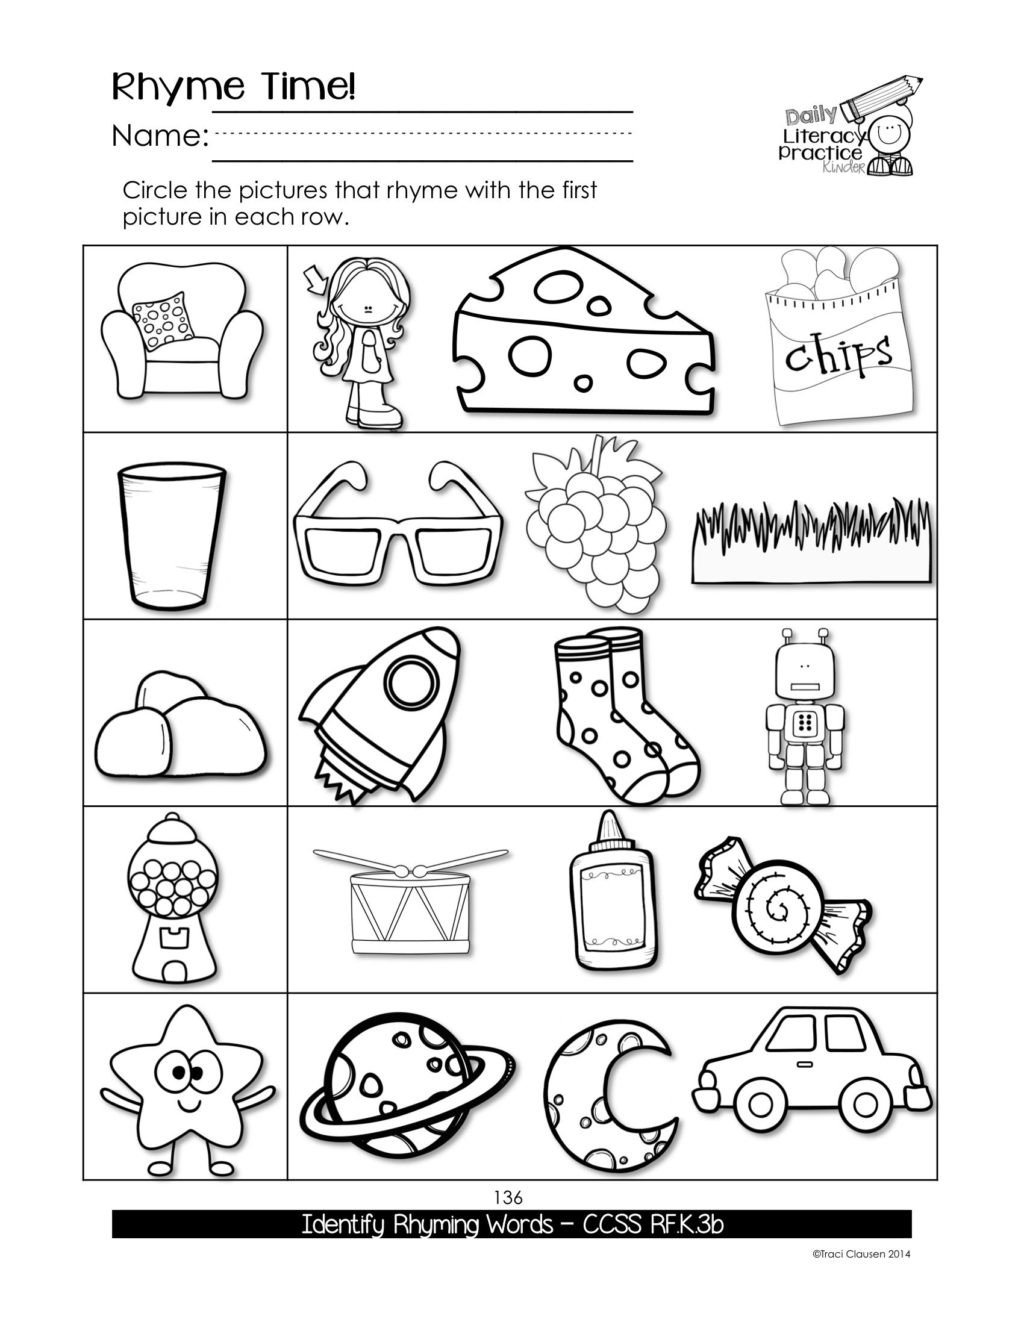 Social Studies Kindergarten Worksheets Worksheet Worksheet Kindergarten Worksheets social Stu S